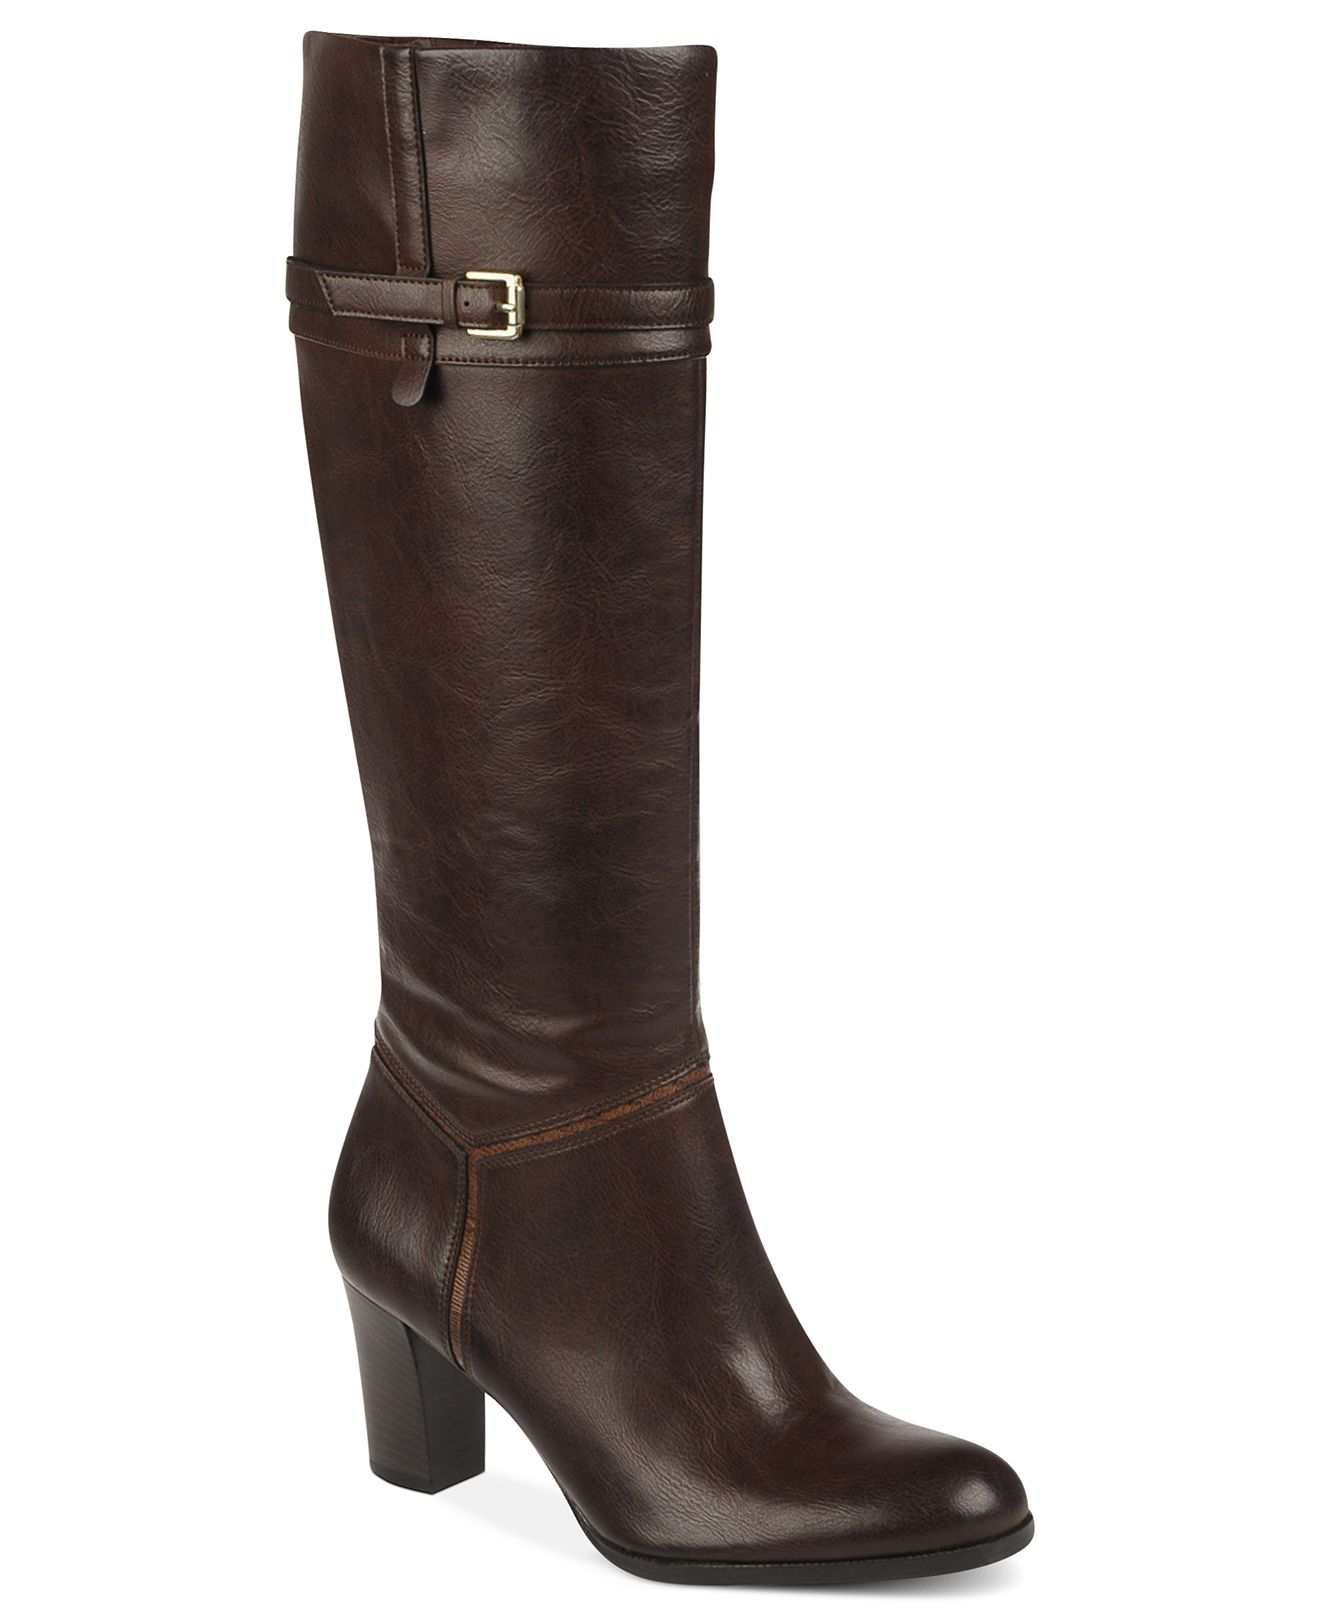 Boots+On+Sale+At+Macy39;s Pics Photos  As Sales Of Fashion S Most